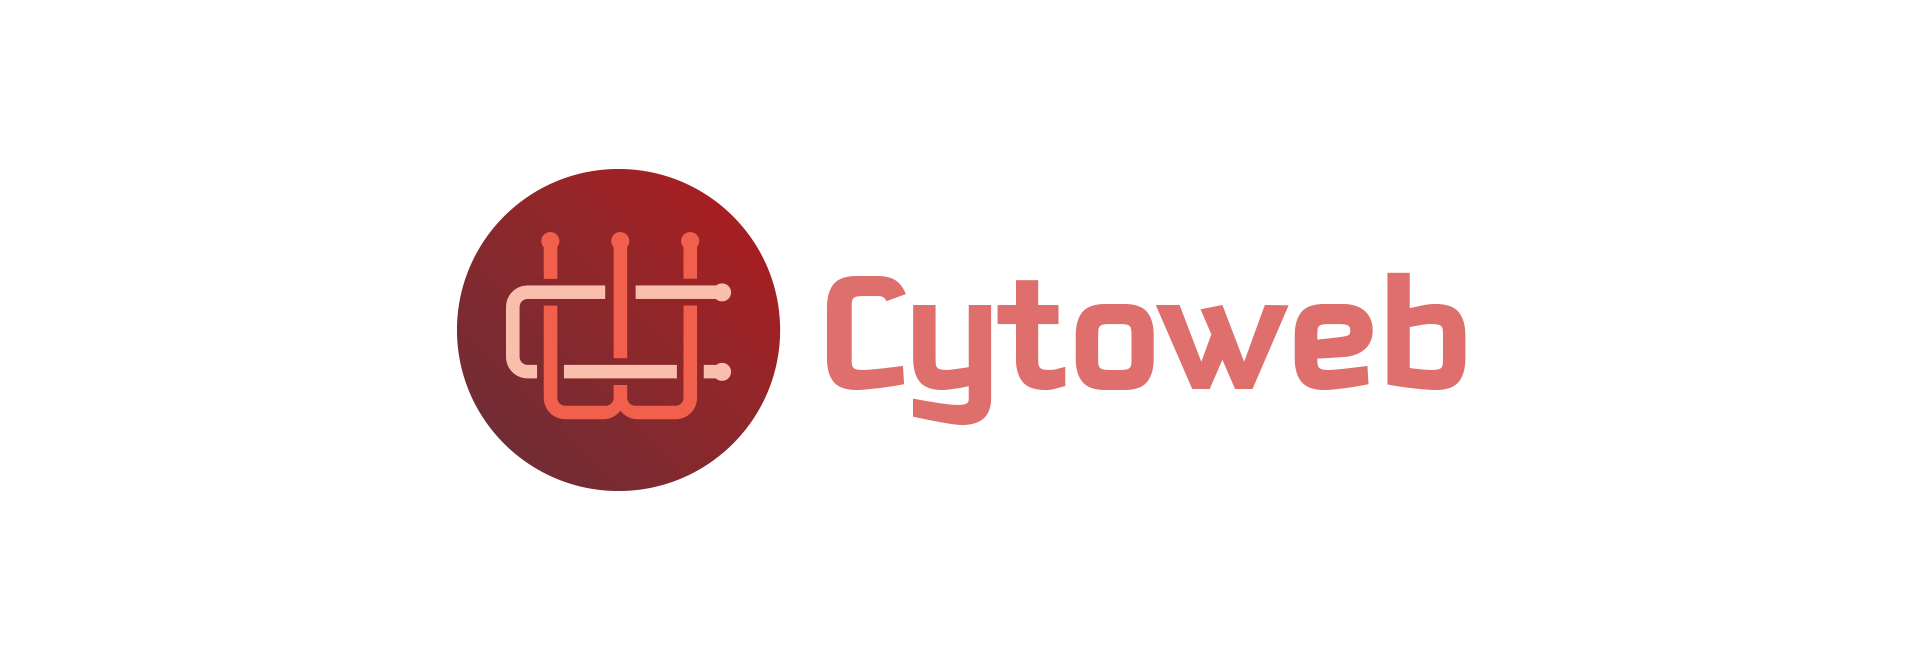 Final Cytoweb logo